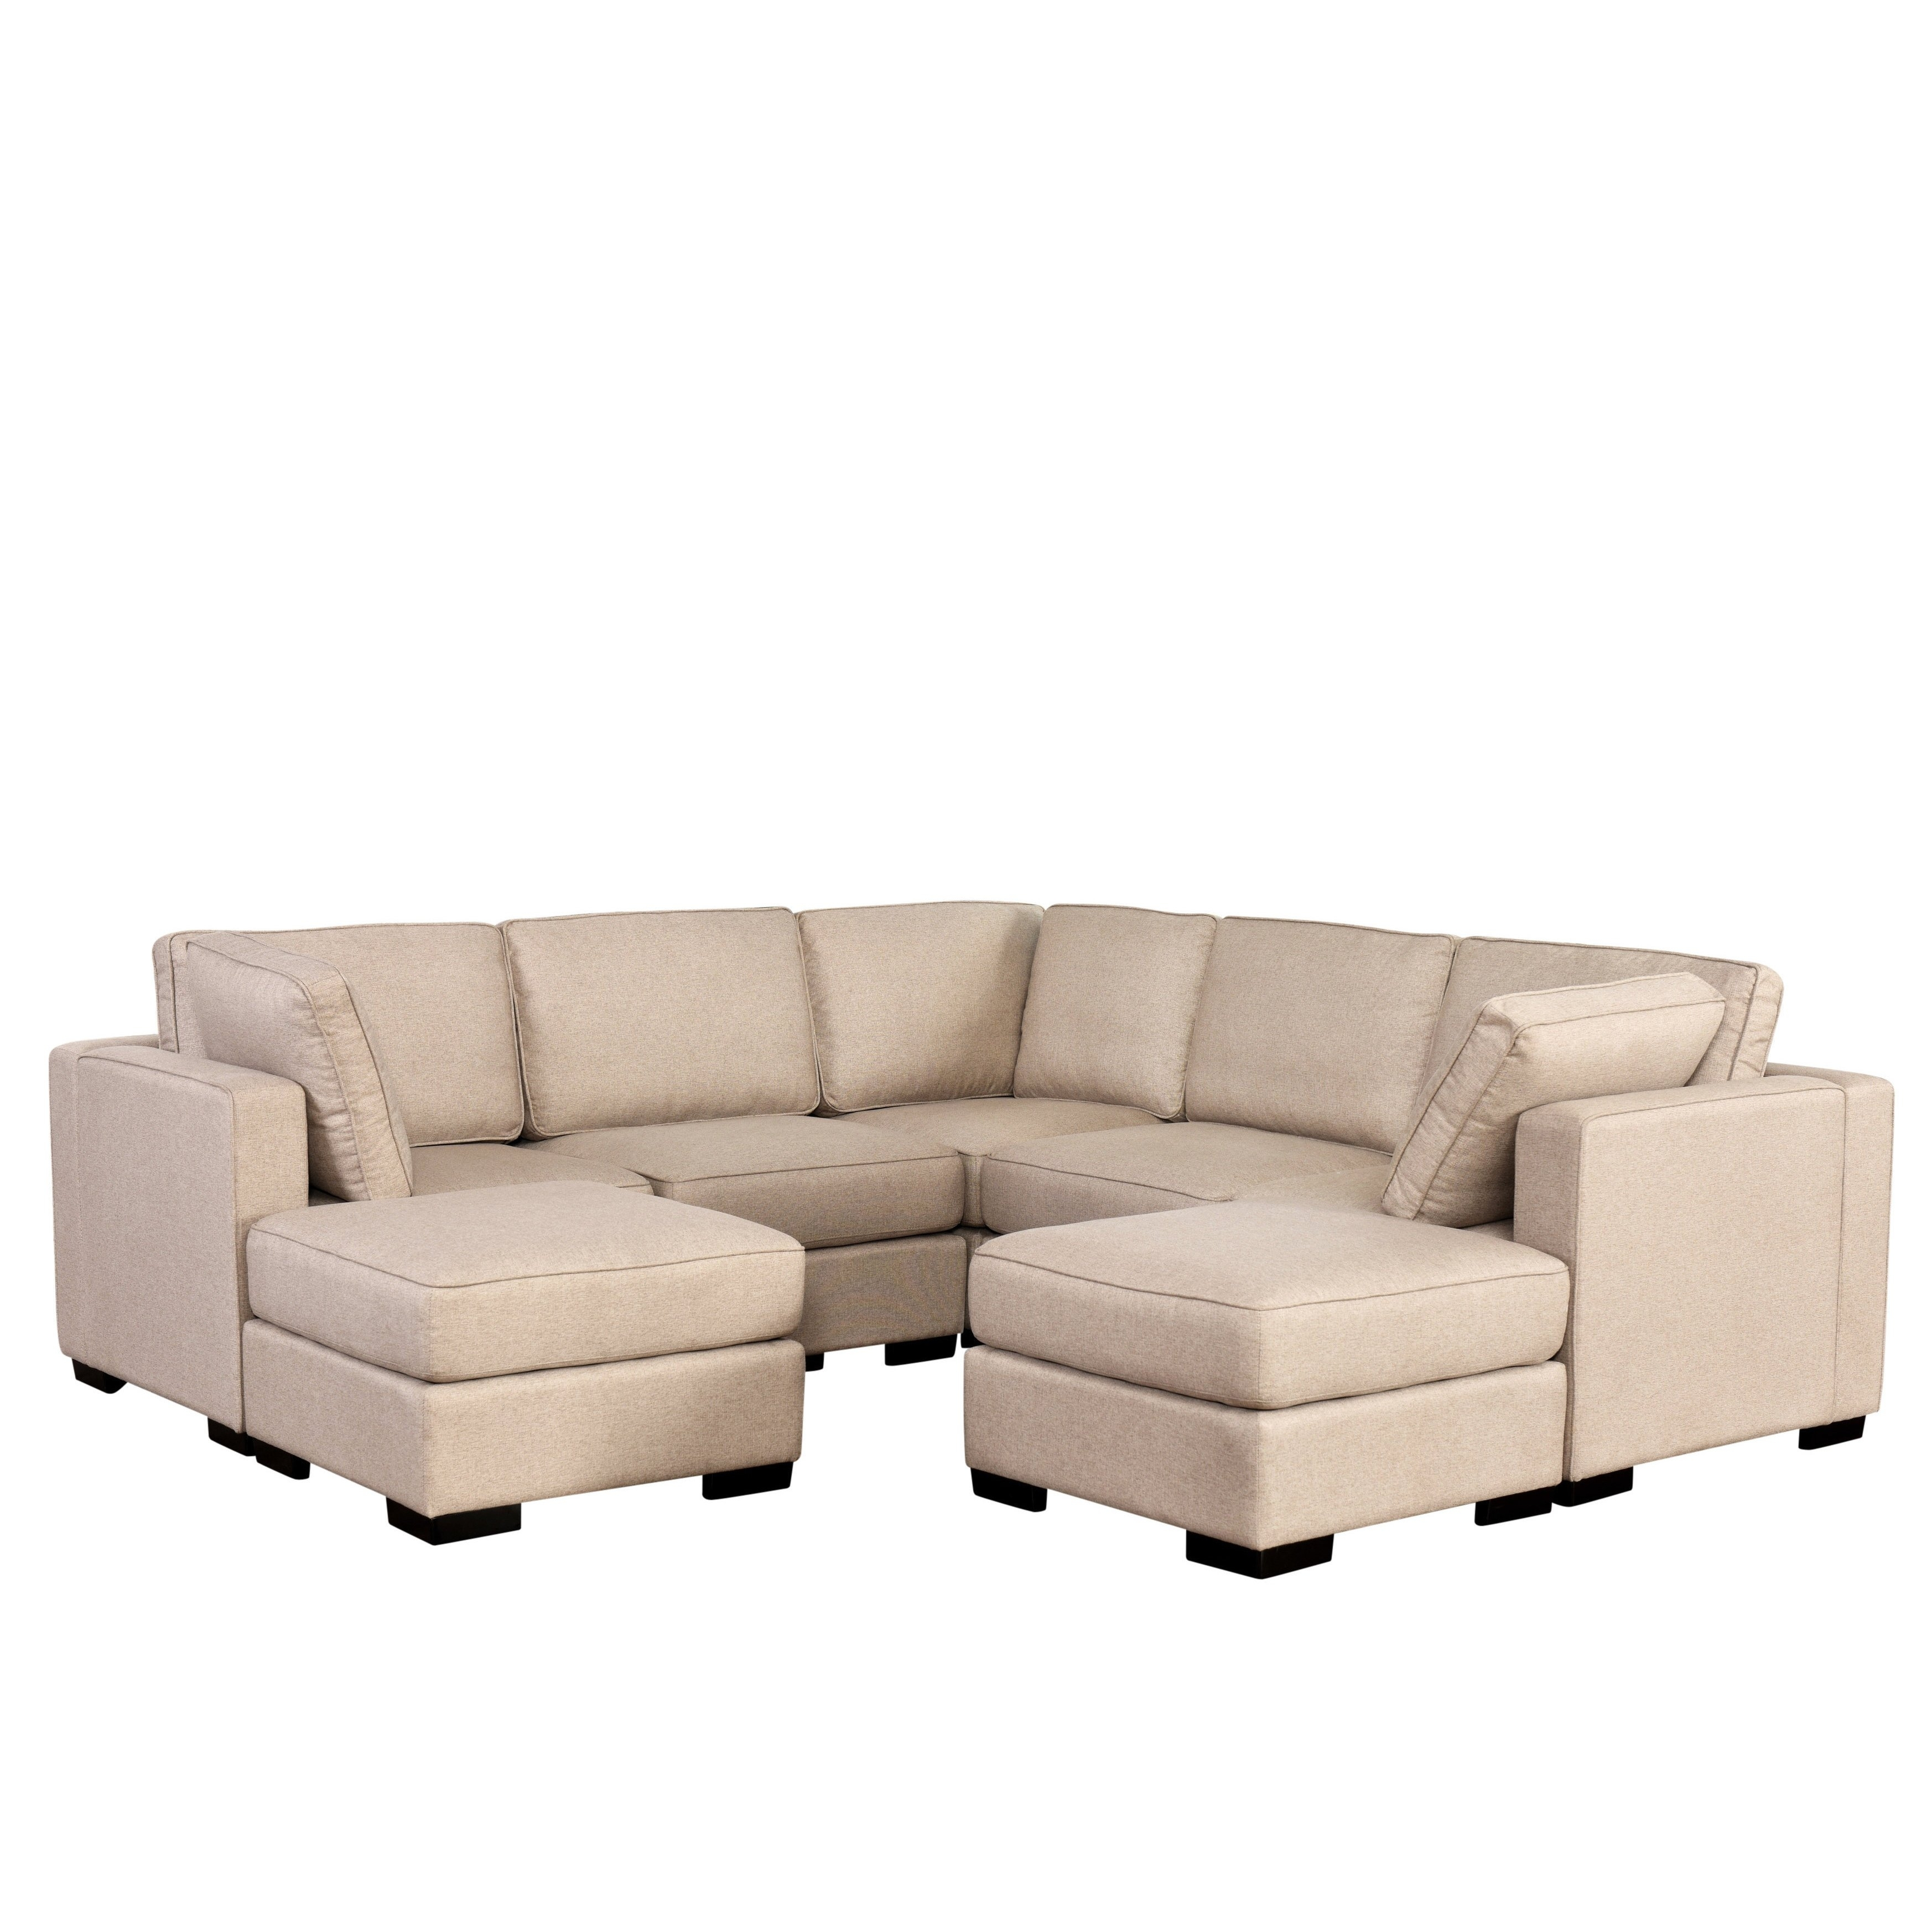 Shop Abbyson Harper Fabric Modular 7-Piece Sectional - Free Shipping for Harper Down 3 Piece Sectionals (Image 25 of 30)